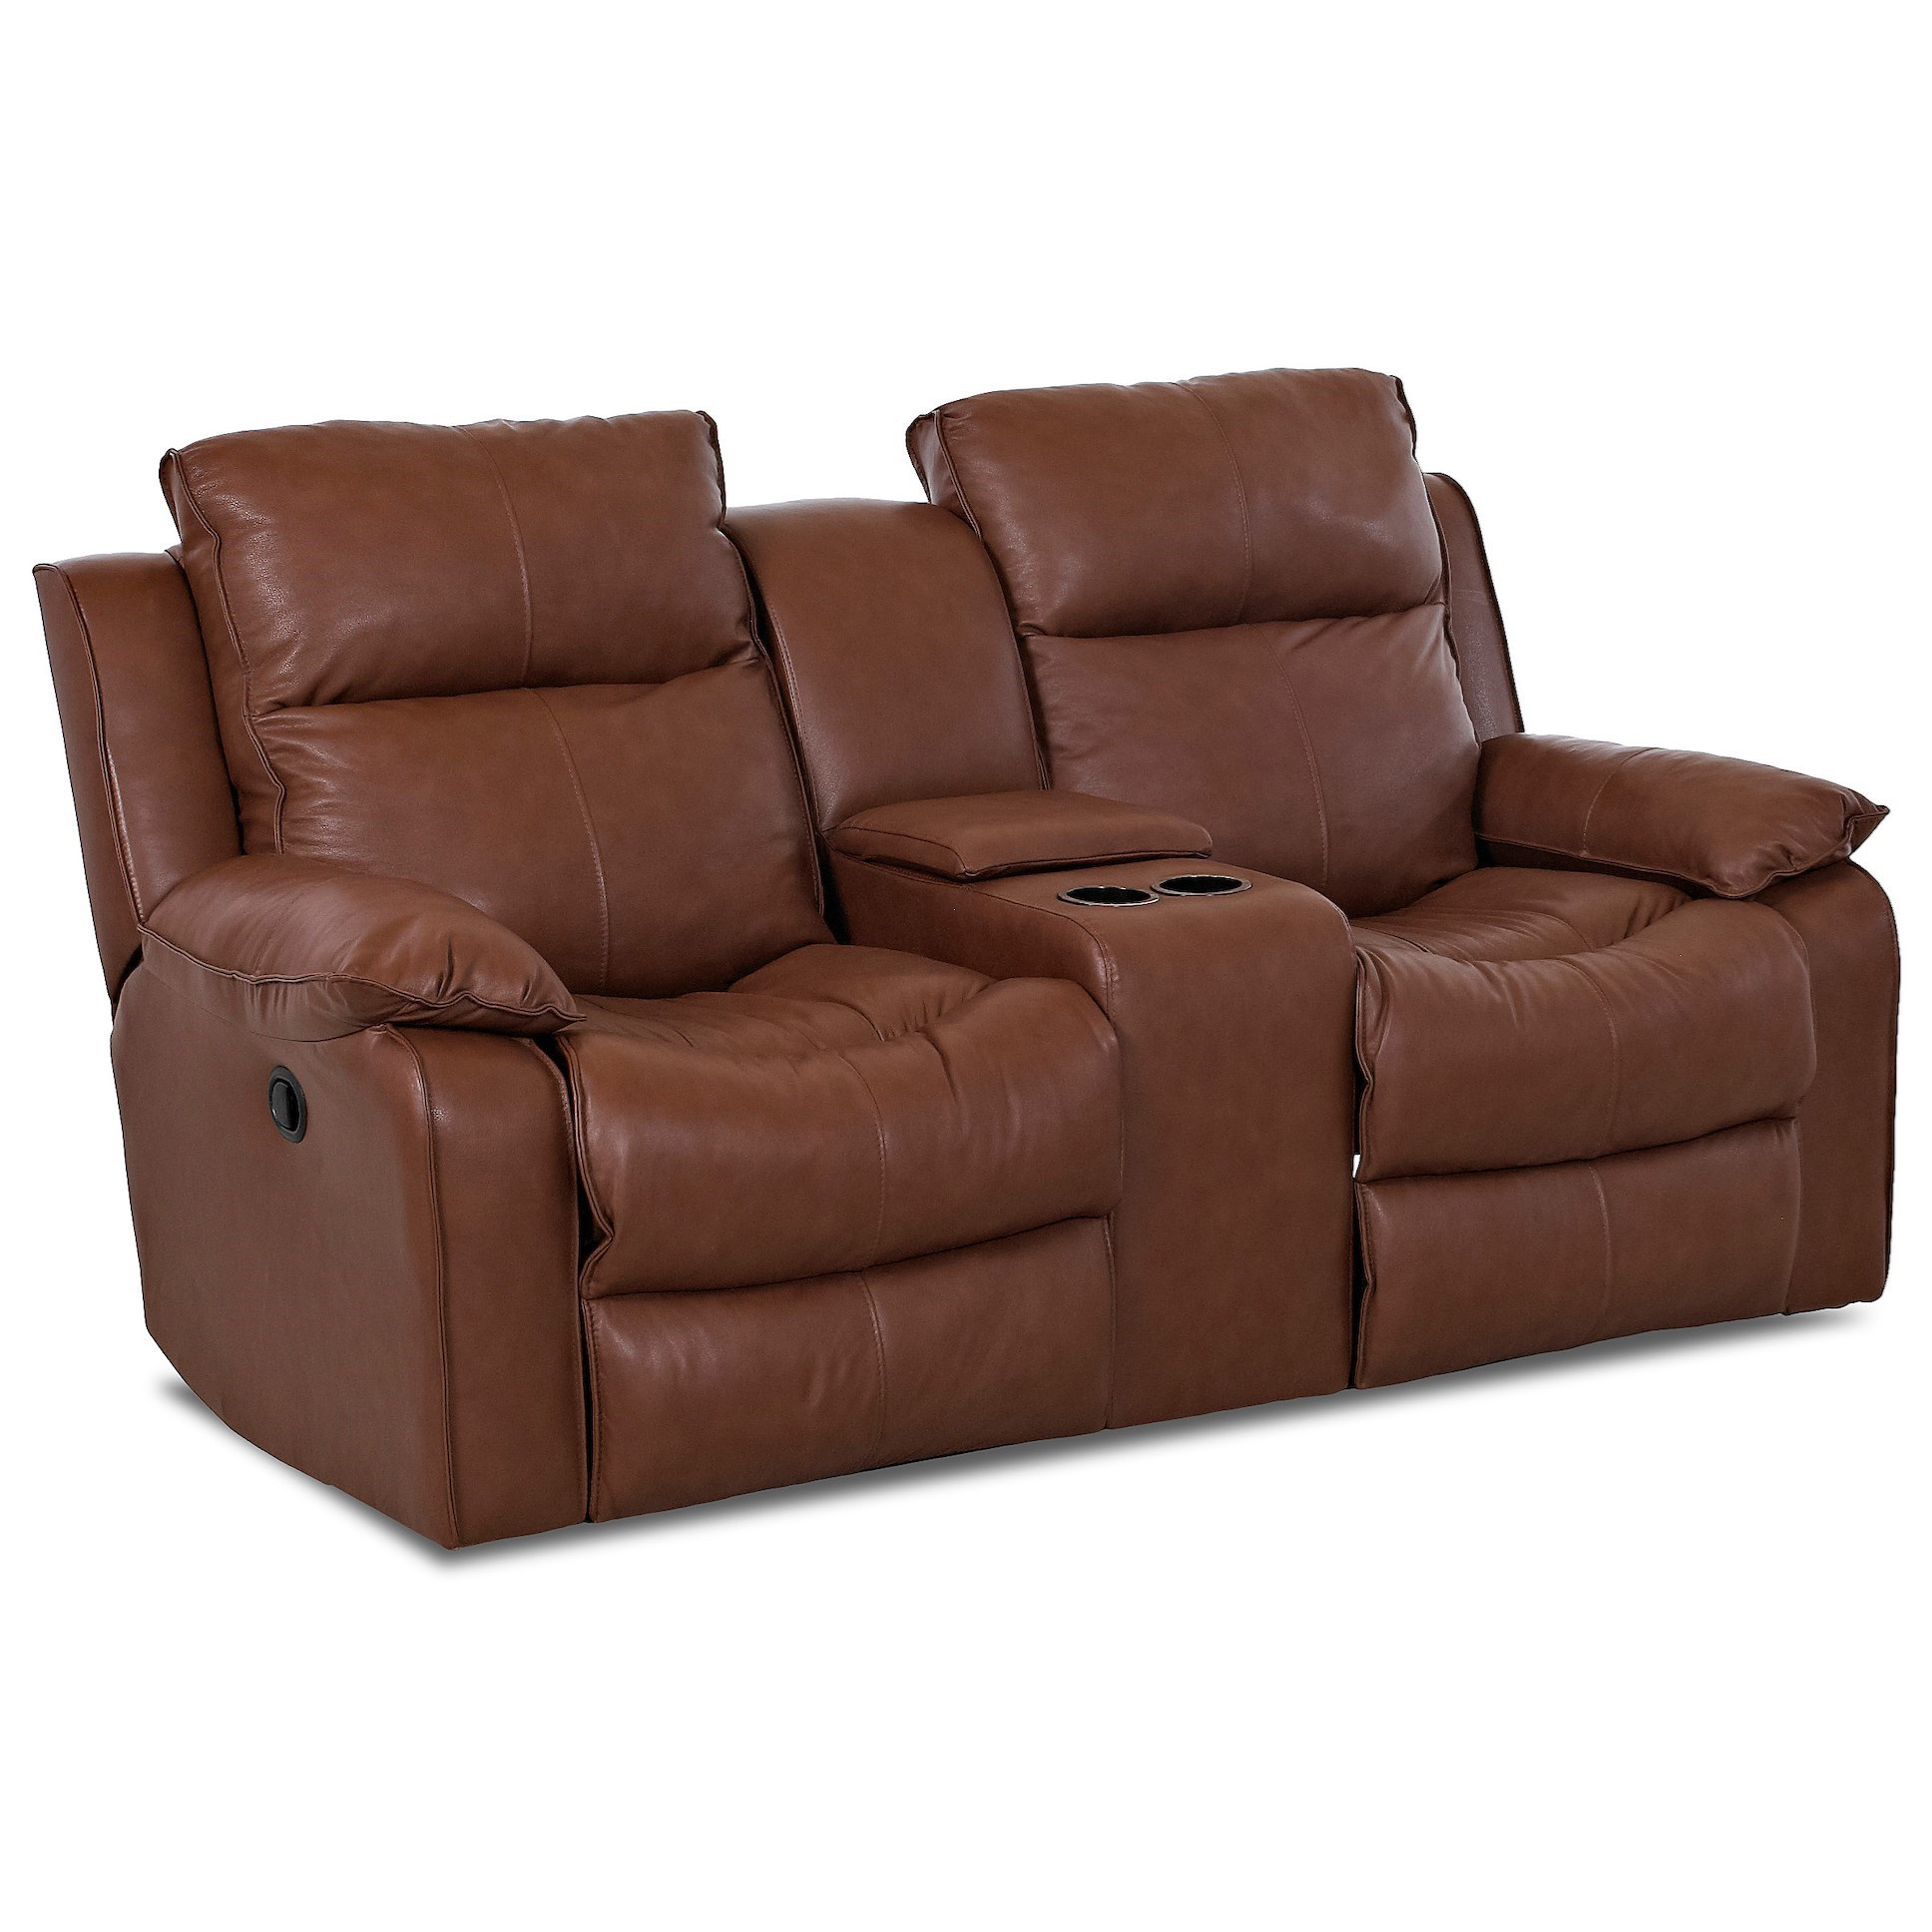 Castaway Console Reclining Loveseat by Klaussner at Northeast Factory Direct